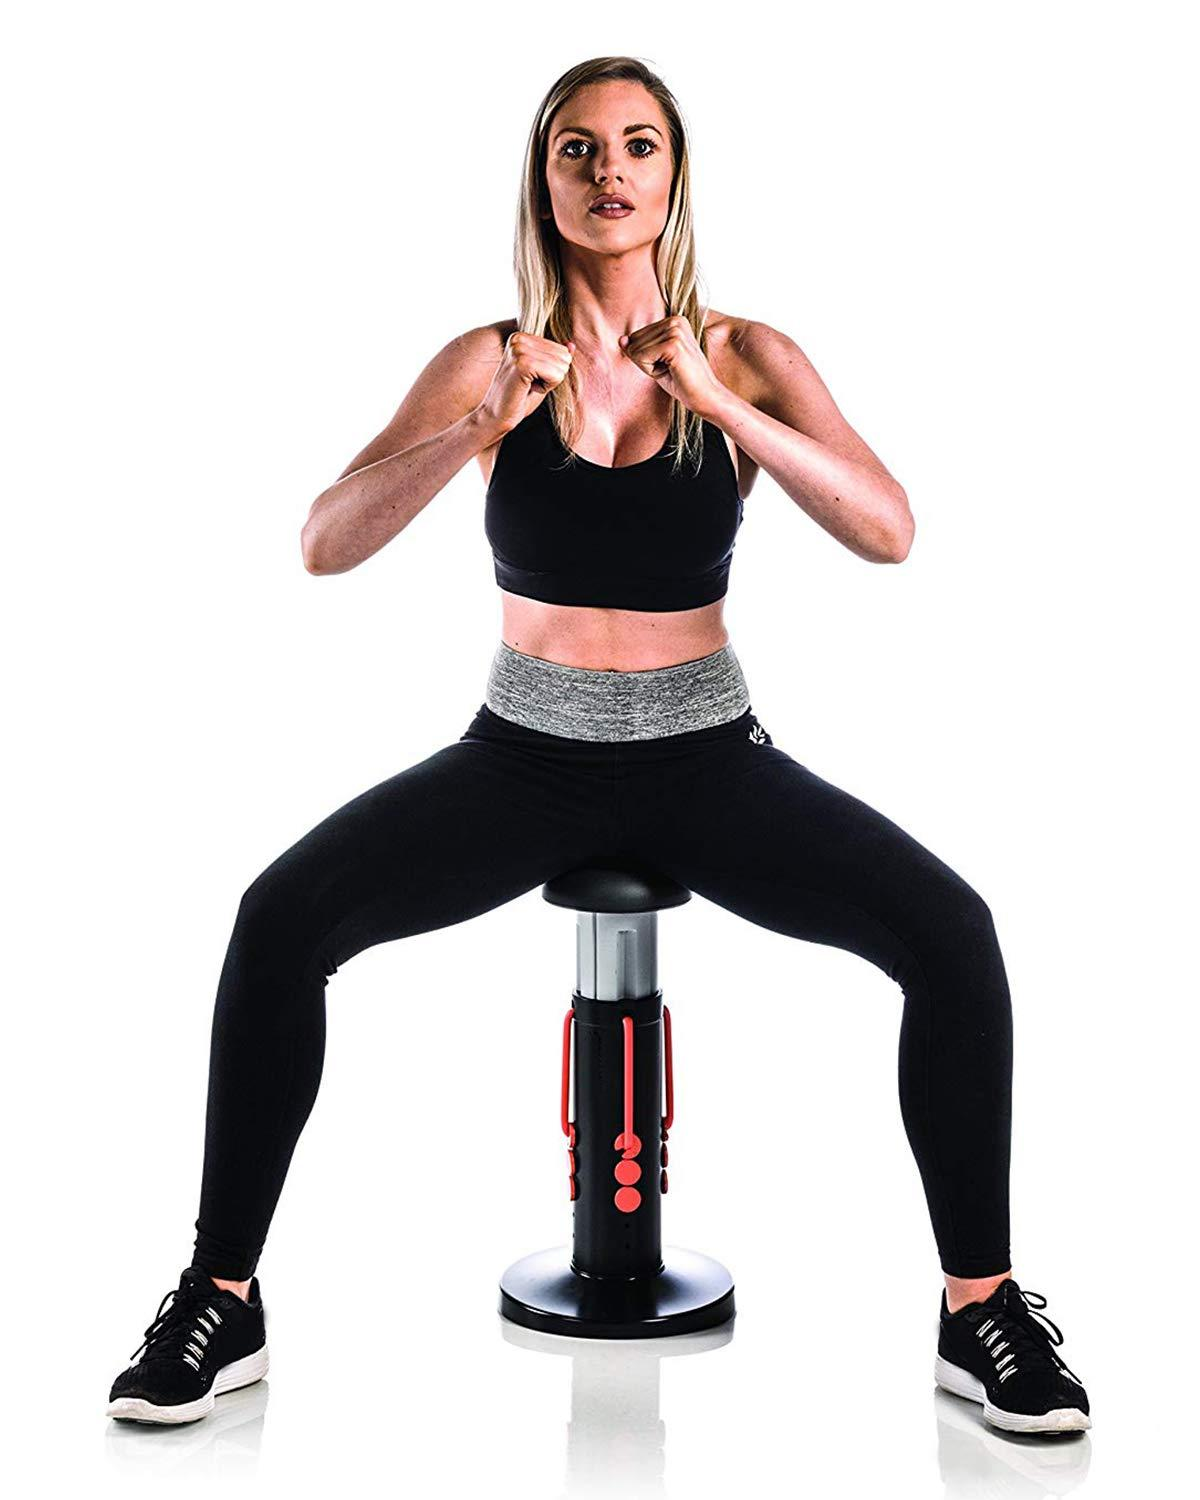 High Stress Full Body Squat Assistive Exercise Home Gym Workout Lower Body And Core Squat Workout Exercise Machine As Seen On TV